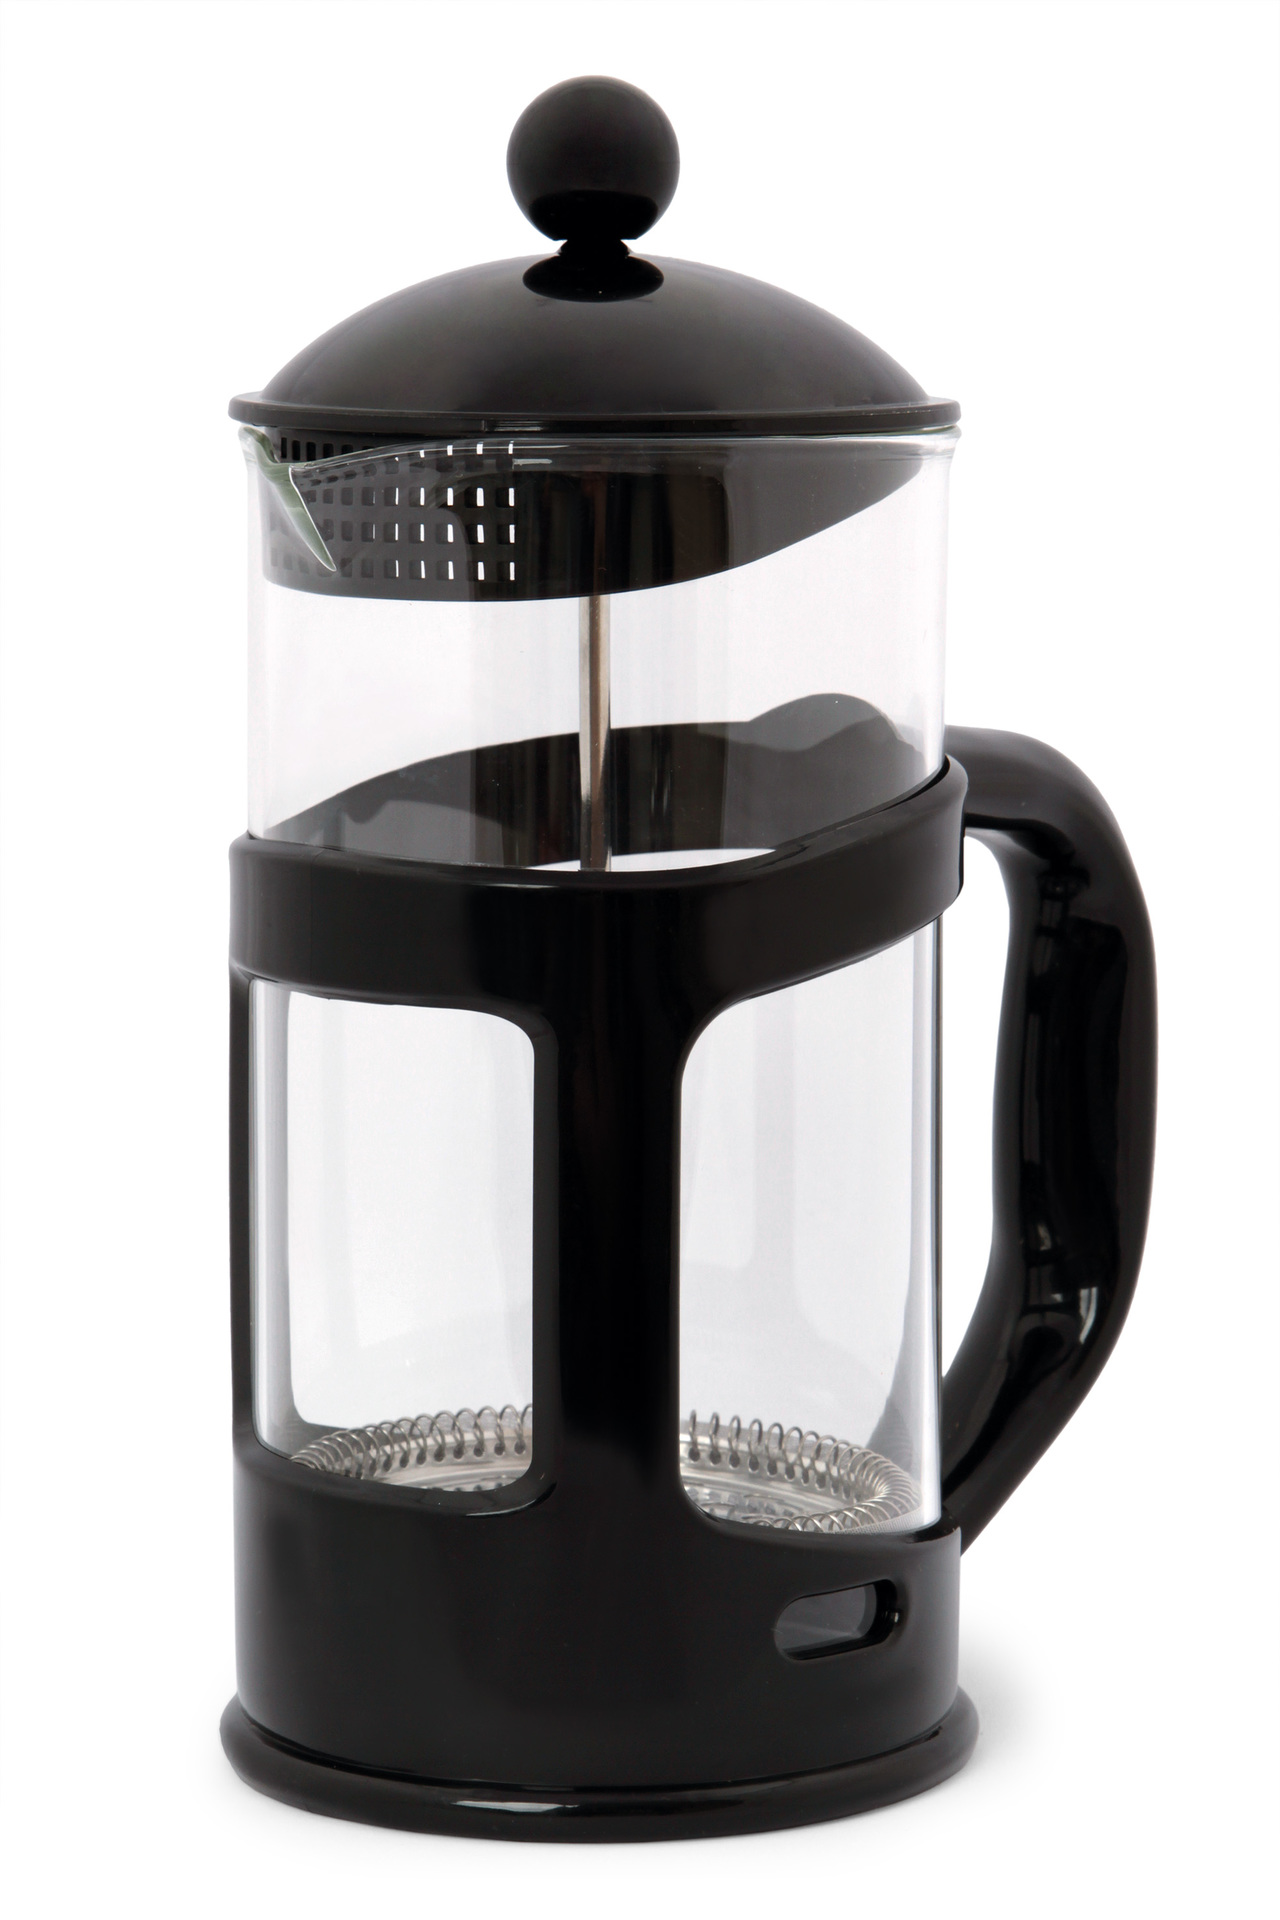 XL FRENCH PRESS, konvice na čaj a kávu